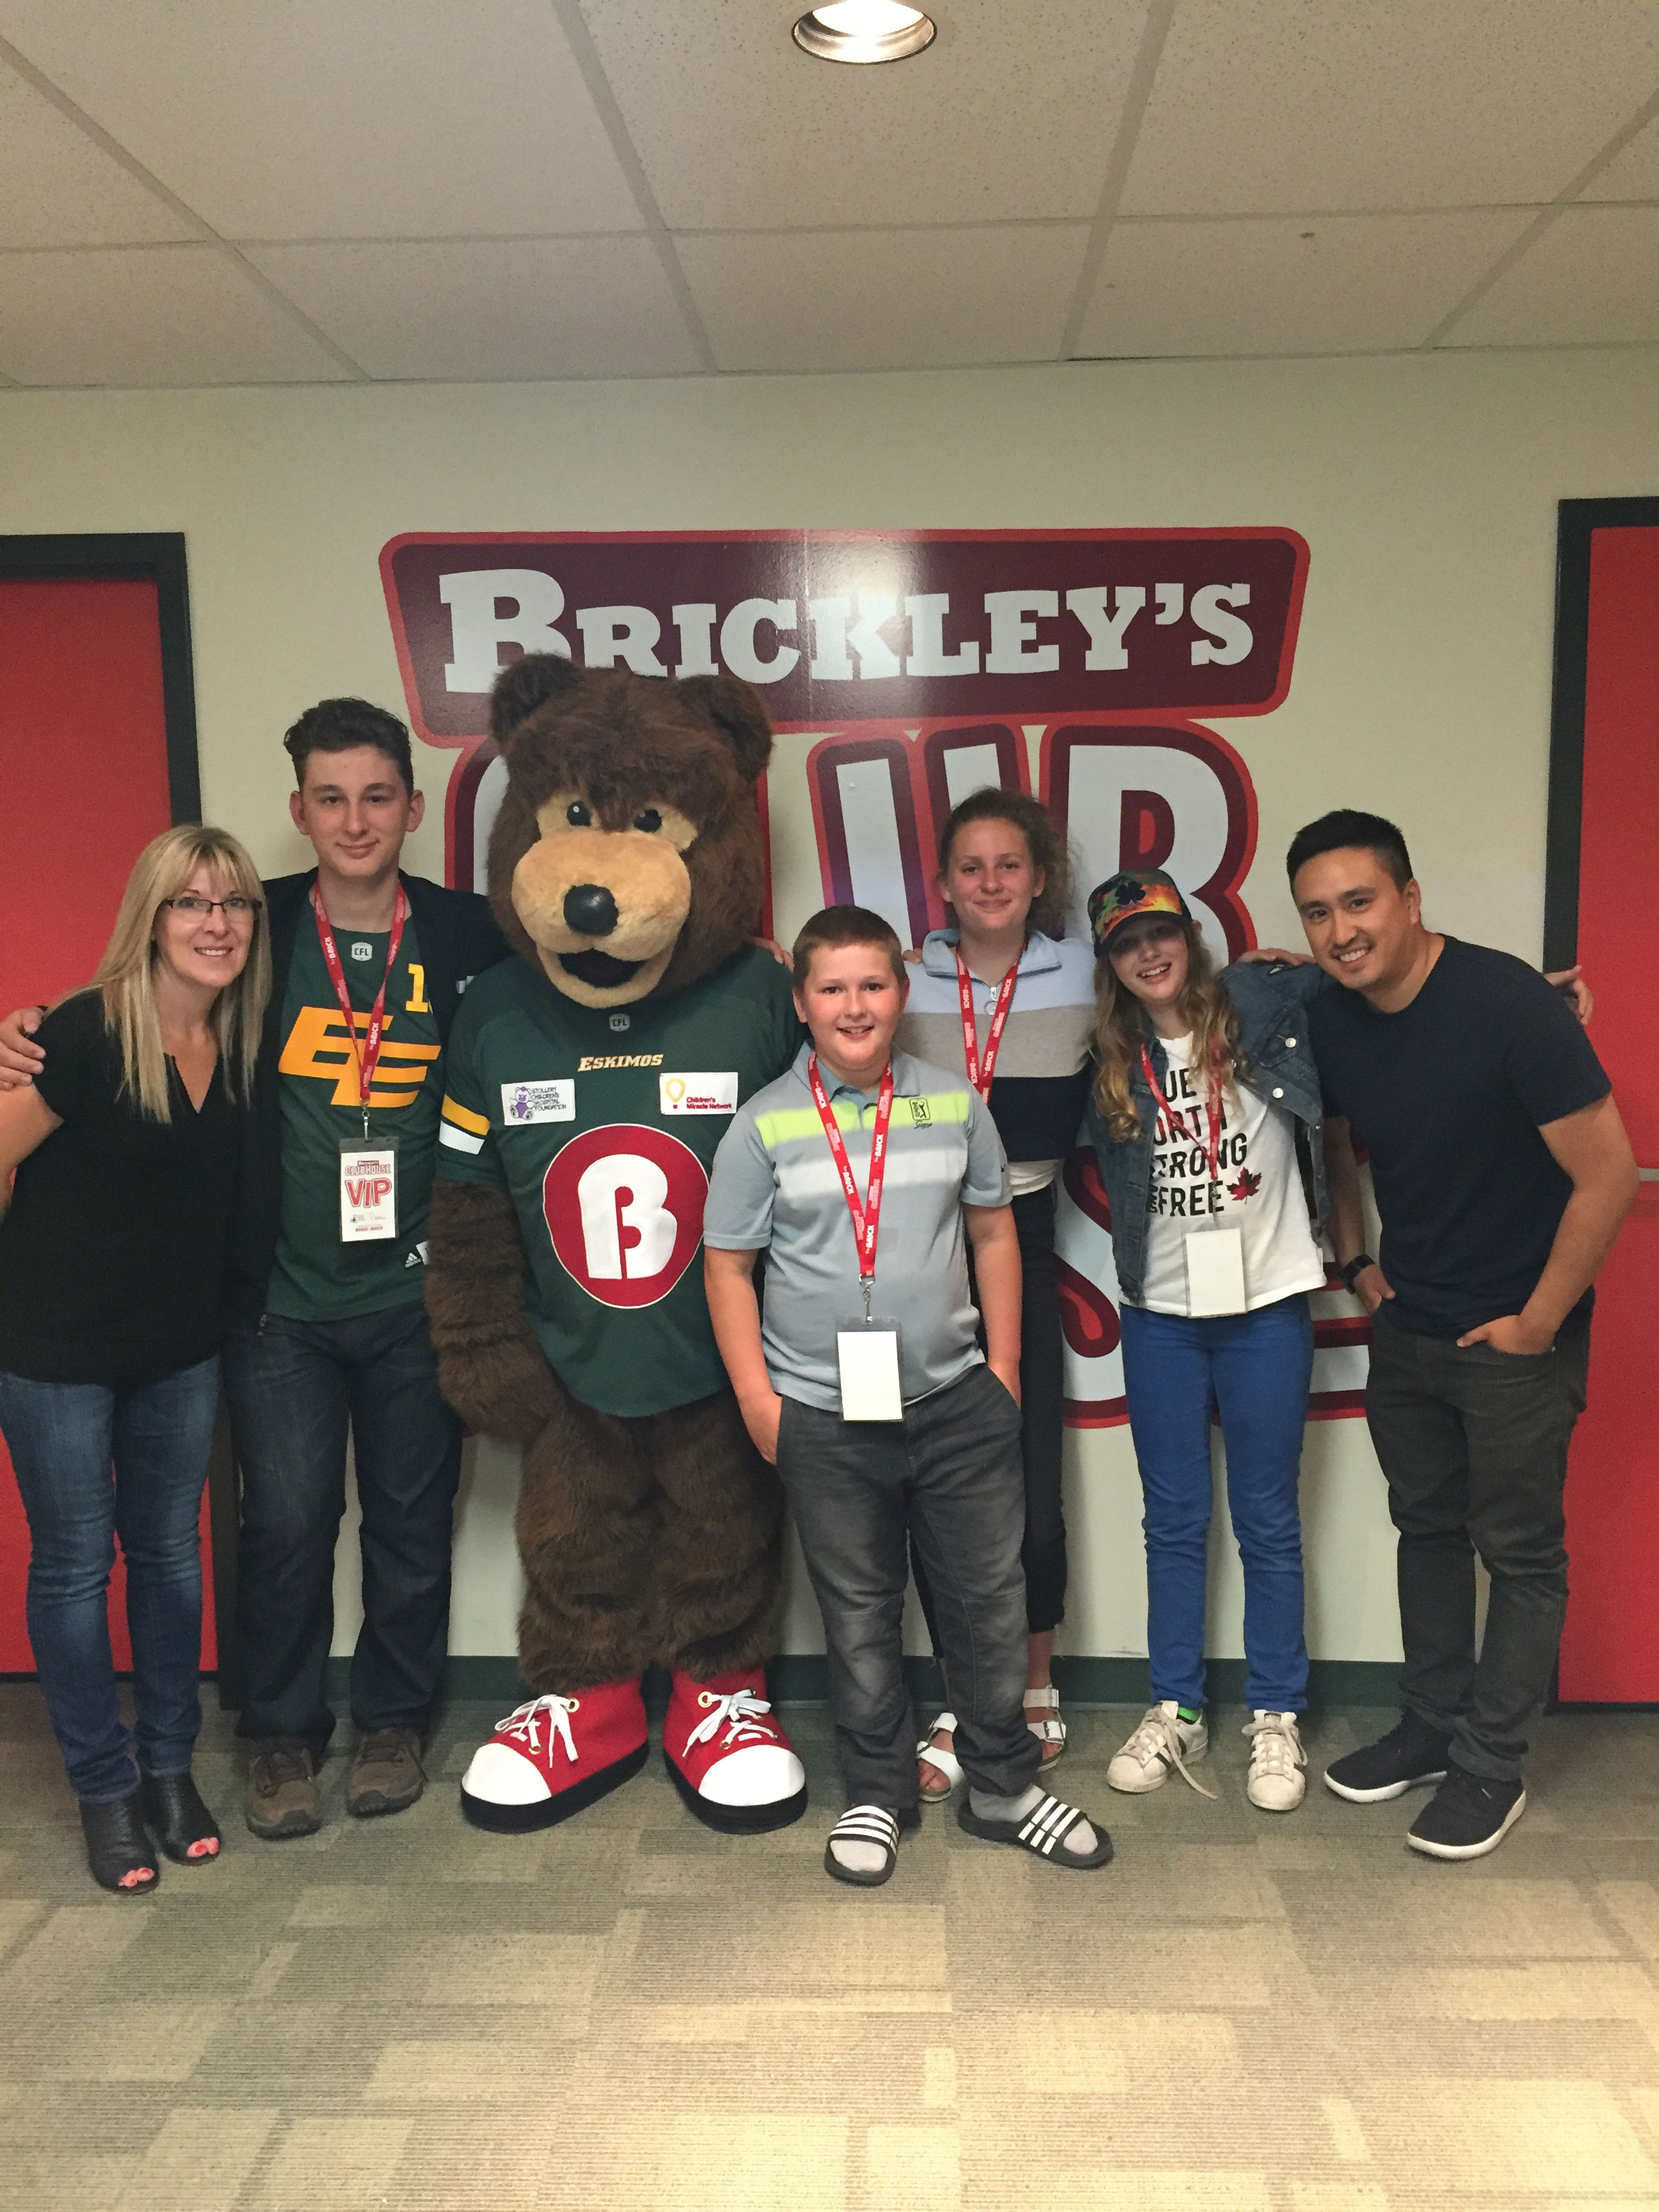 The Brick Mascot with parents and kids at Brickley's Club House